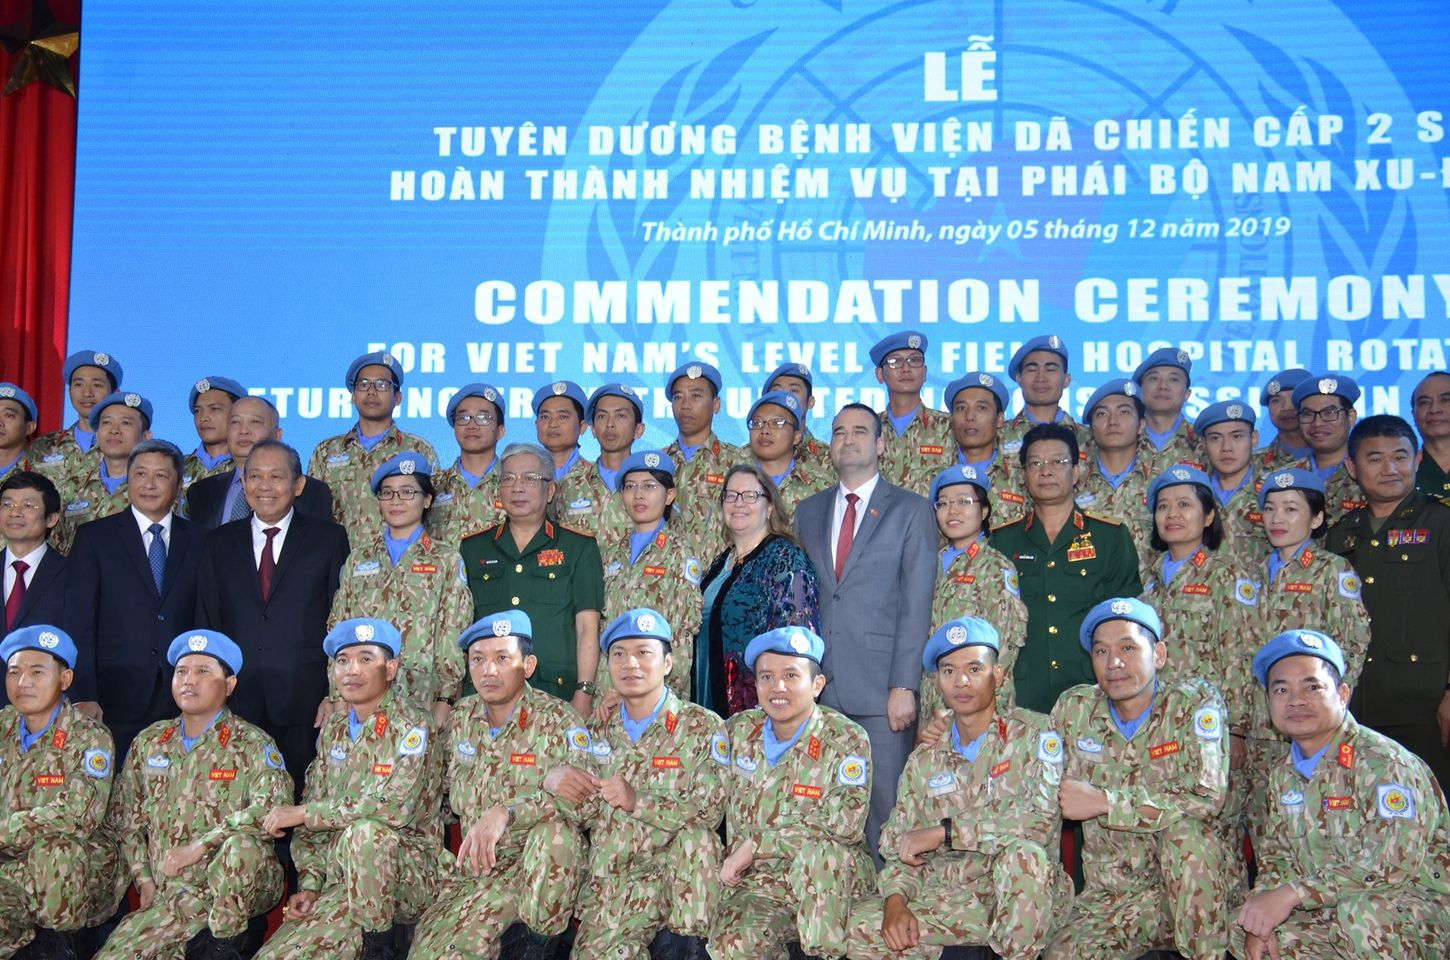 U.S. Consul General Marie Damour (middle) and Vietnamese leaders, including Deputy Minister of Defense Lieut. Gen. Nguyen Chi Vinh, participated in the commendation of the first level 2 field hospital after completing their duties in South Sudan, held in Ho Chi Minh City, December 5, 2019. Photo: U.S. Consulate in Ho Chi Minh City